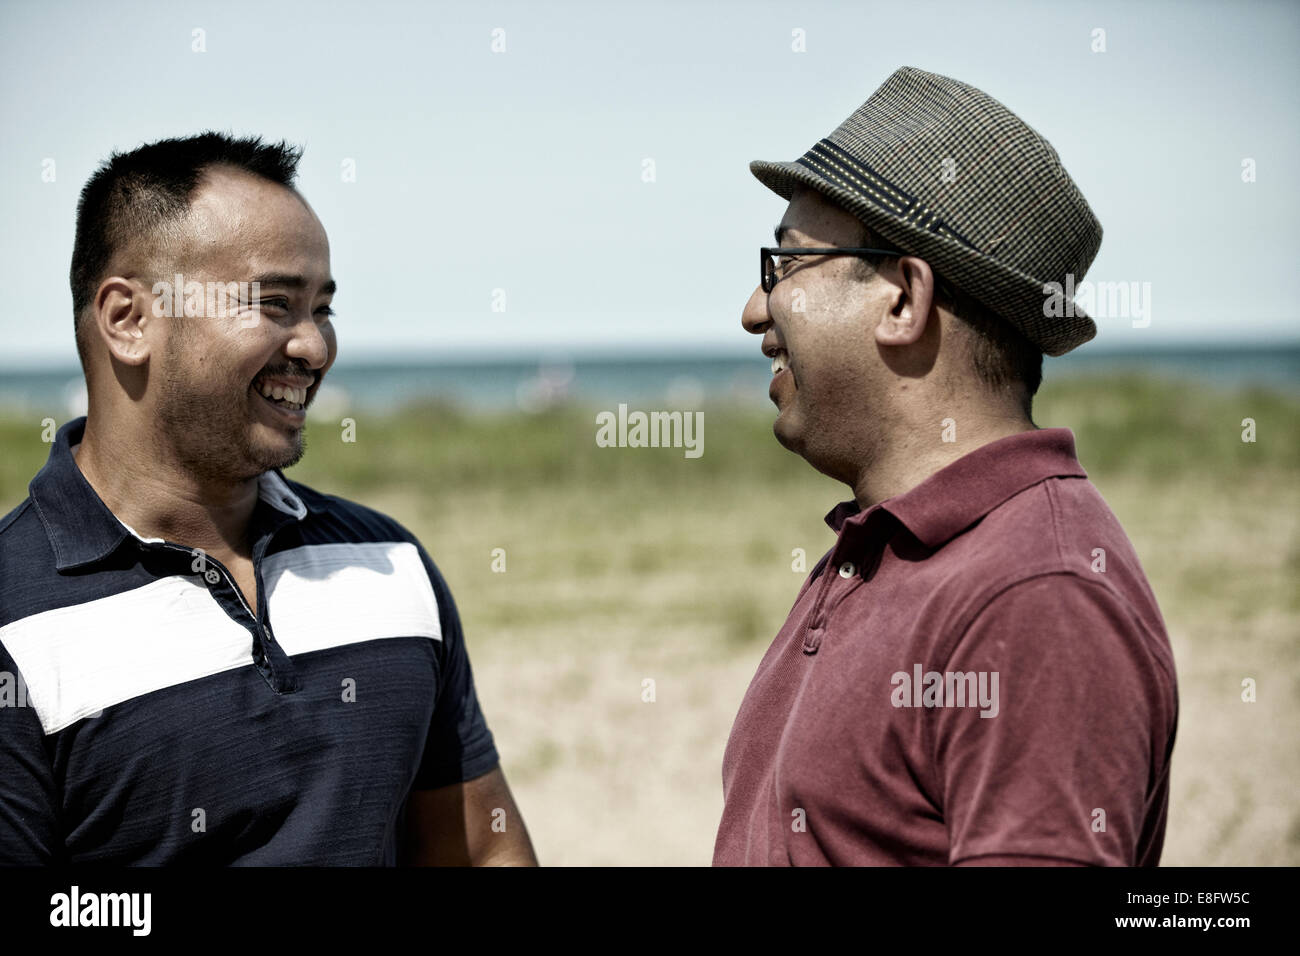 USA, Illinois, Cook County, Chicago, Two men on beach - Stock Image